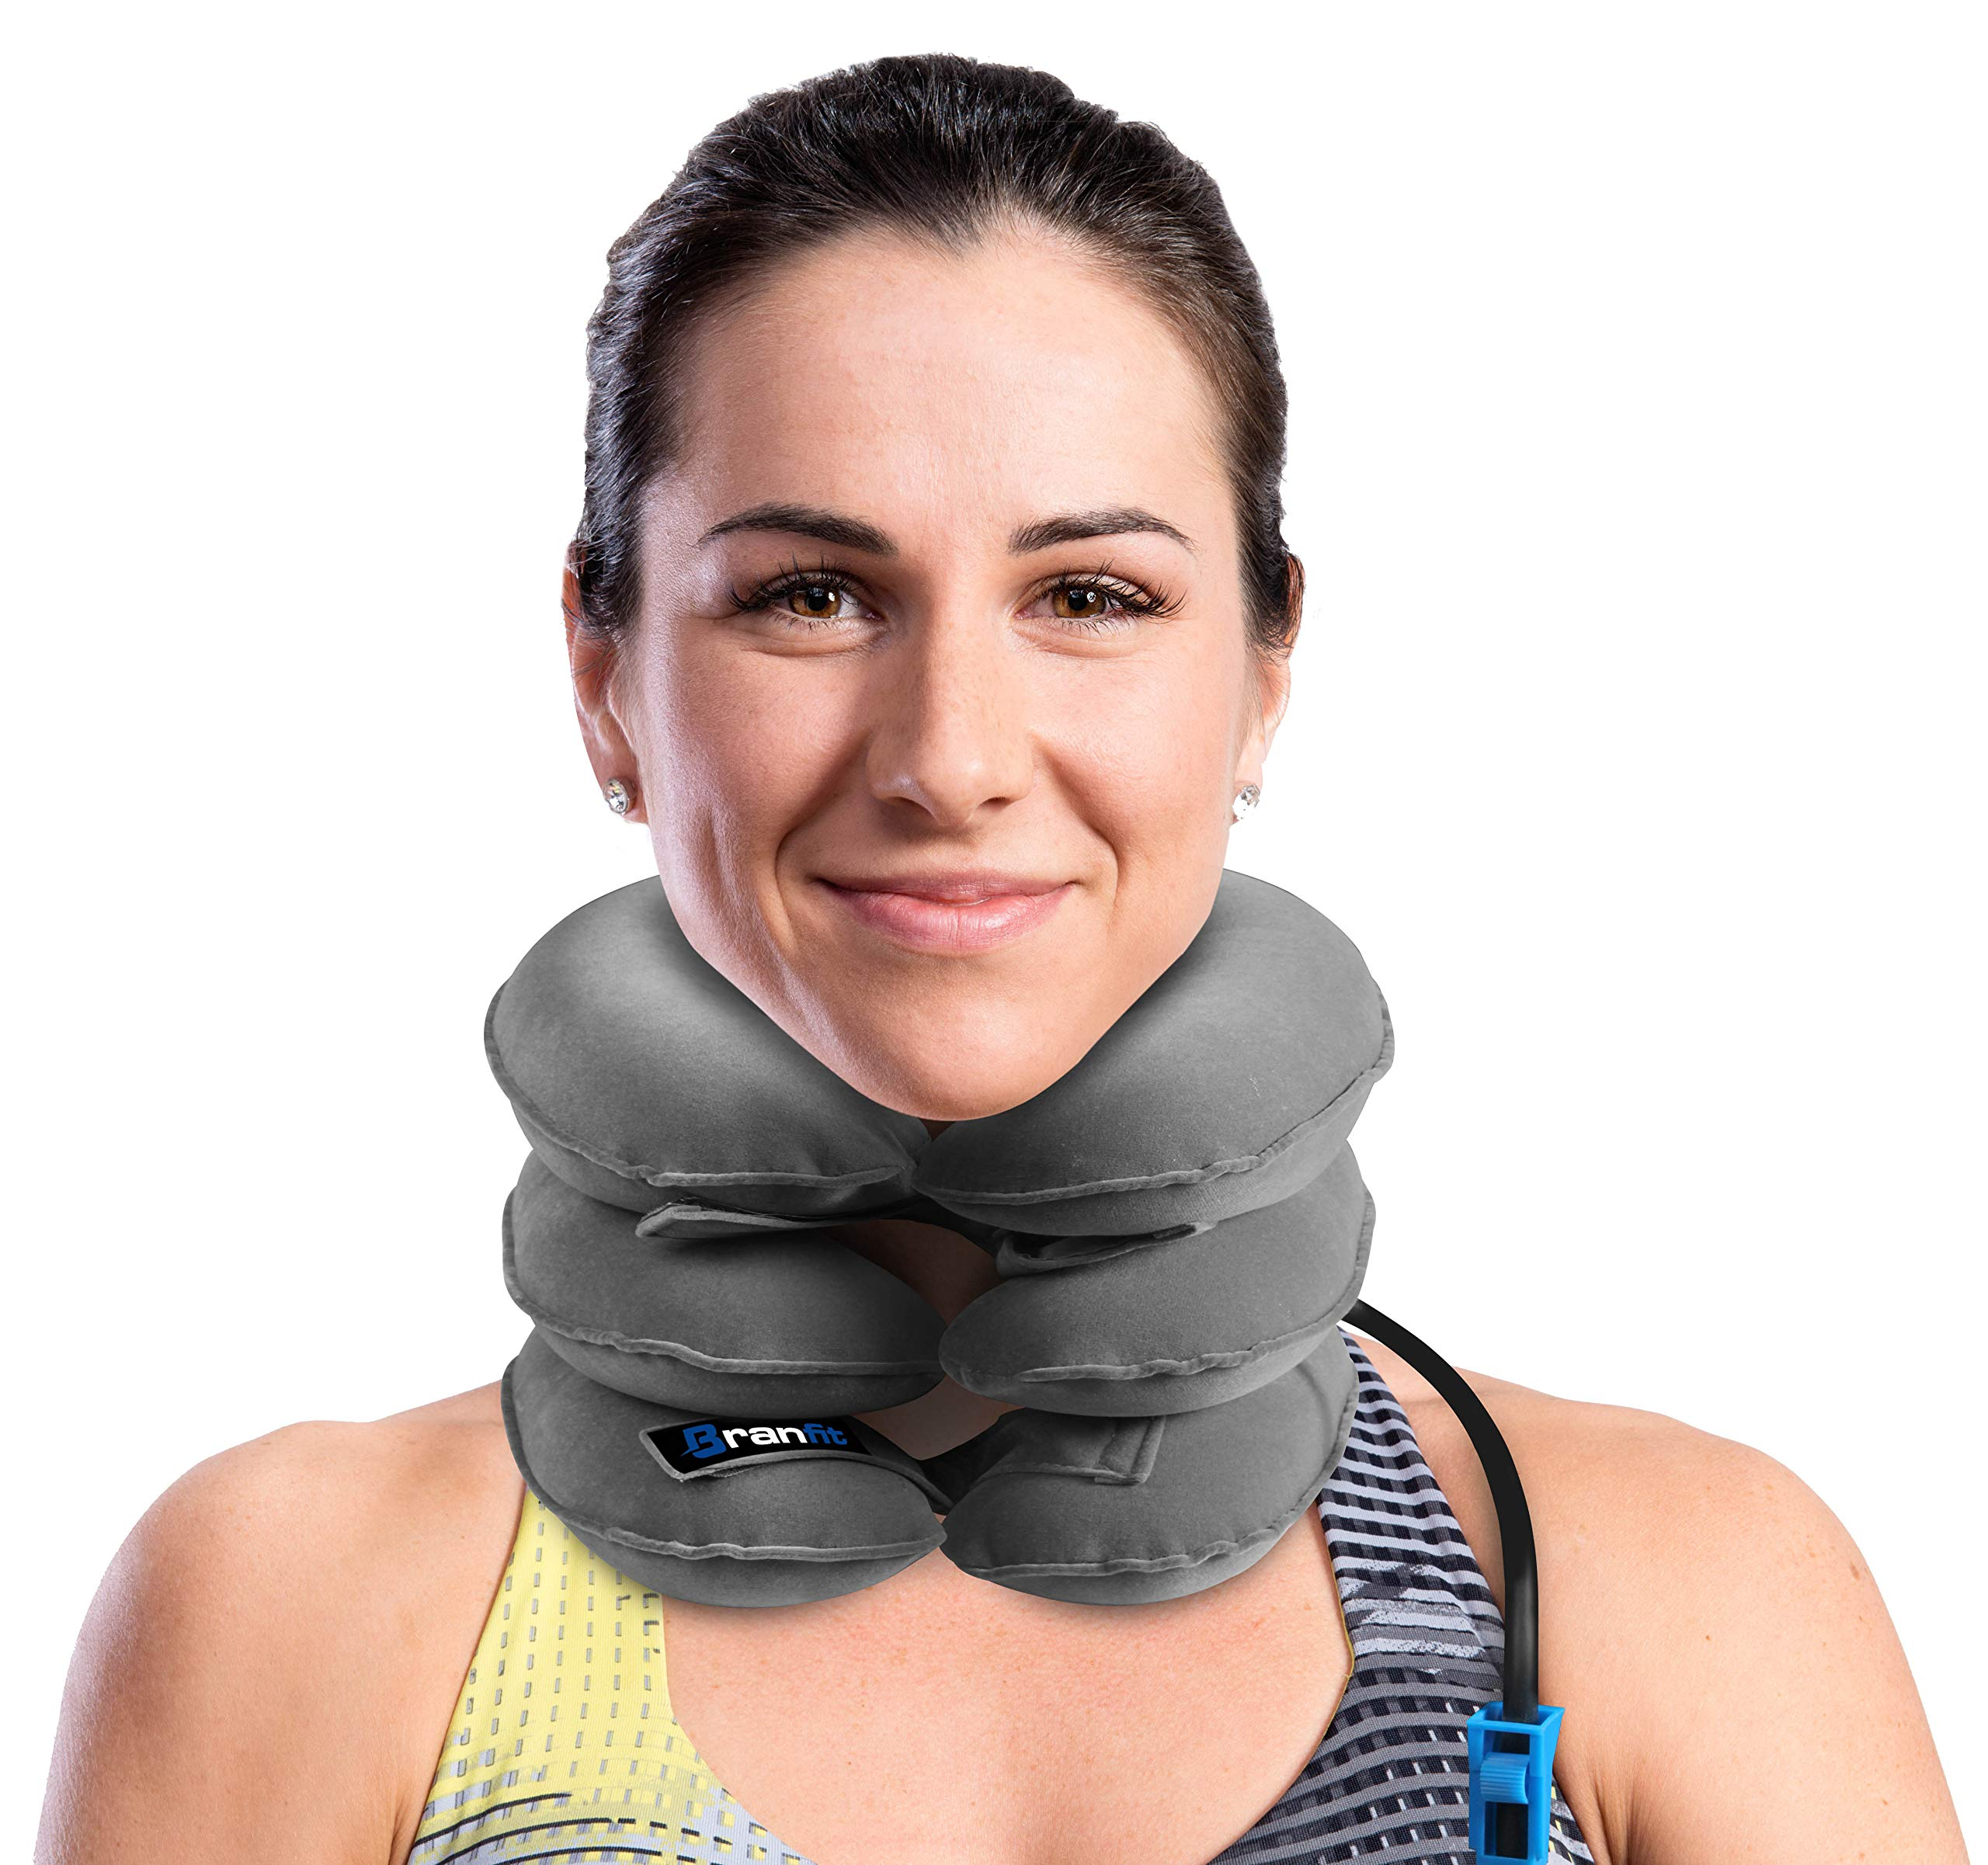 Cervical Neck Traction Device and Collar Brace by BRANFIT, Inflatable and Adjustable USA Designed Neck Support & Stretcher is Ideal for Spine Alignment and Chronic Neck Pain Relief by Branfit